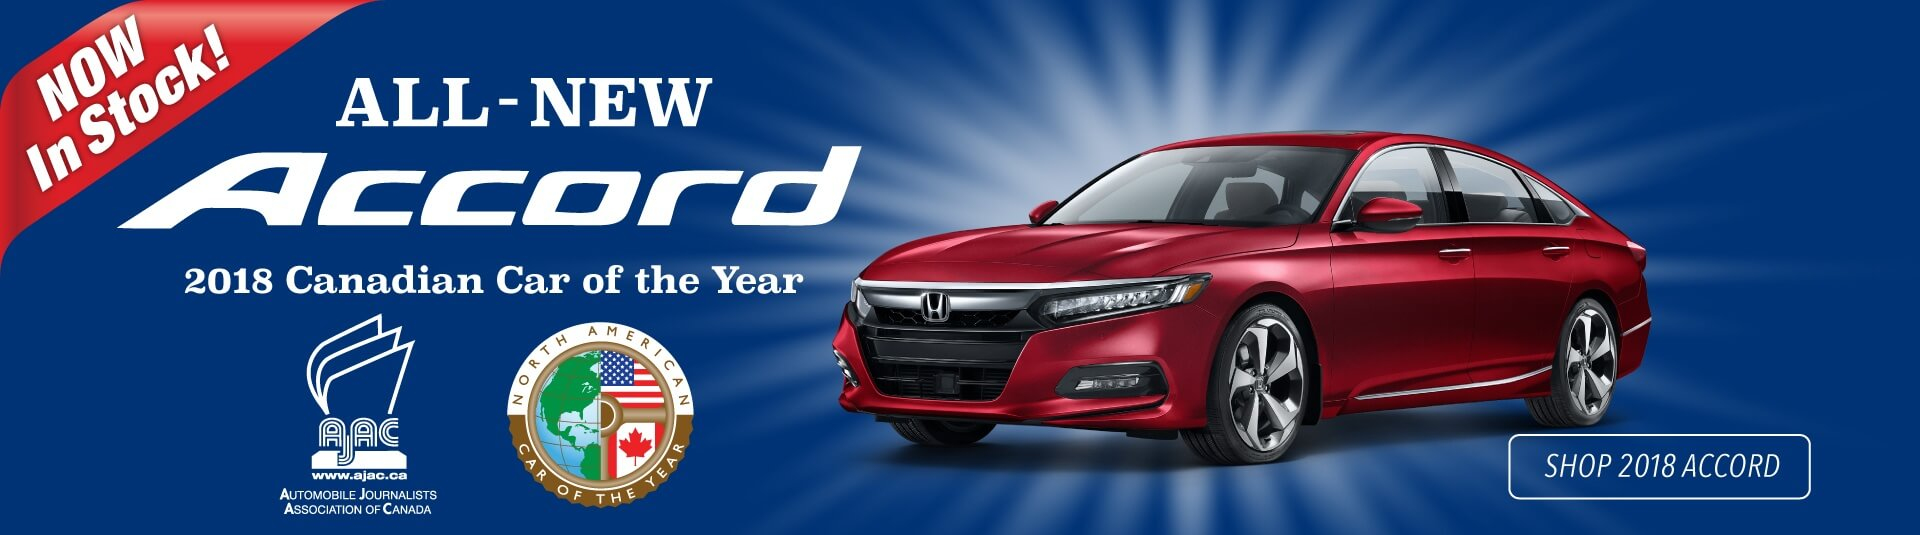 2018 Honda Accord car of the year award winner